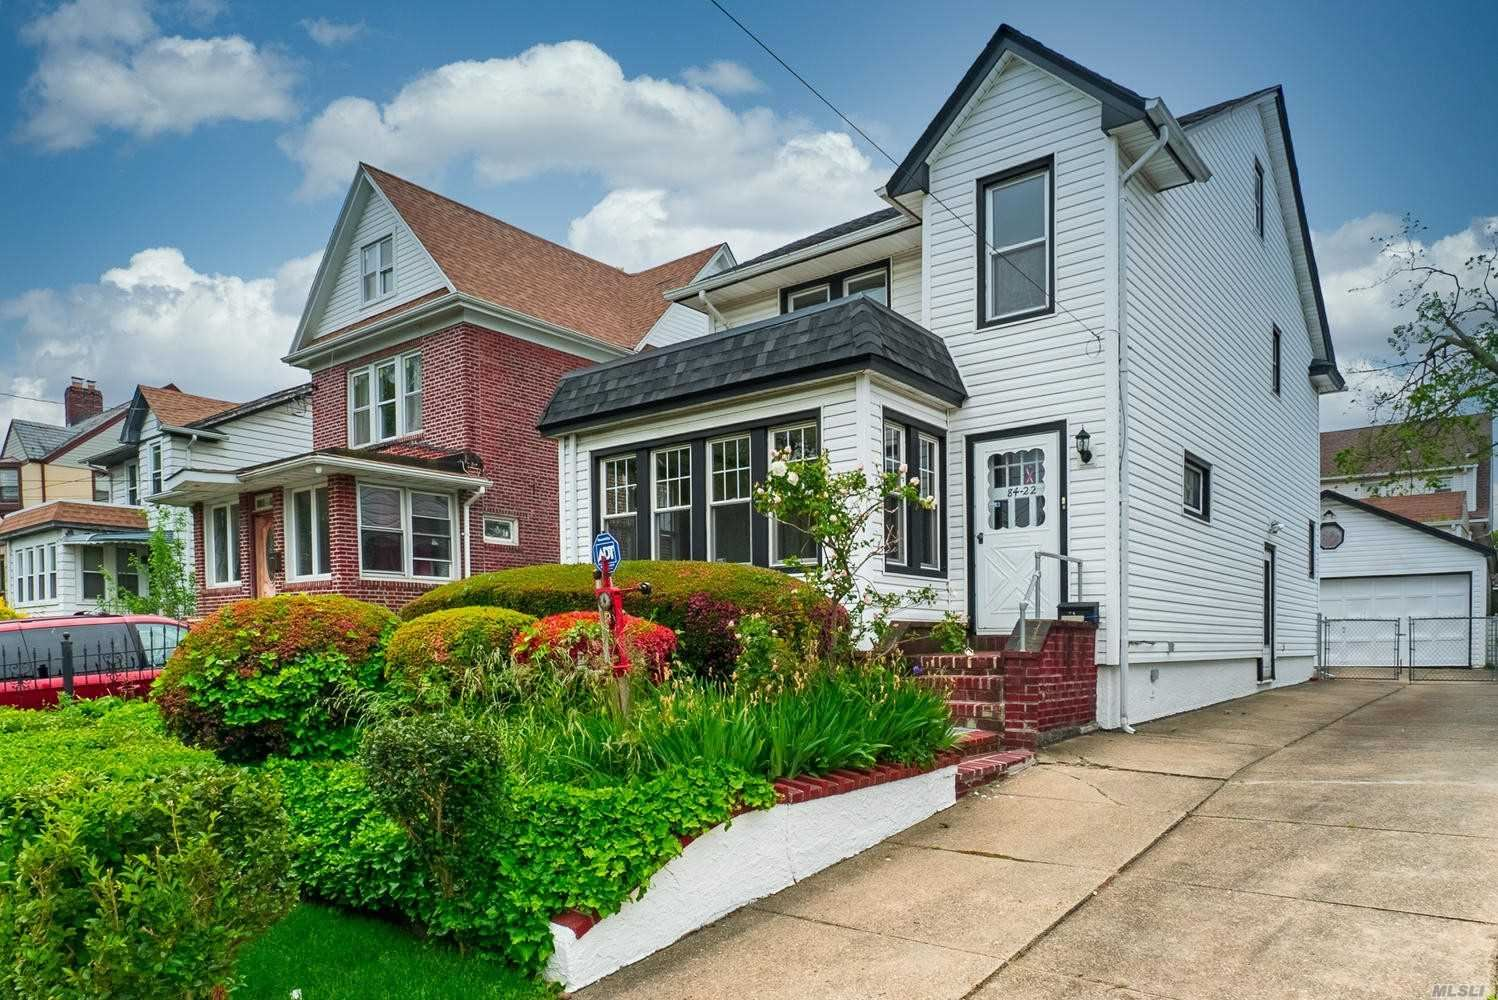 84-22 170th Street, Jamaica Hills, NY 11432 - MLS#: 3219070